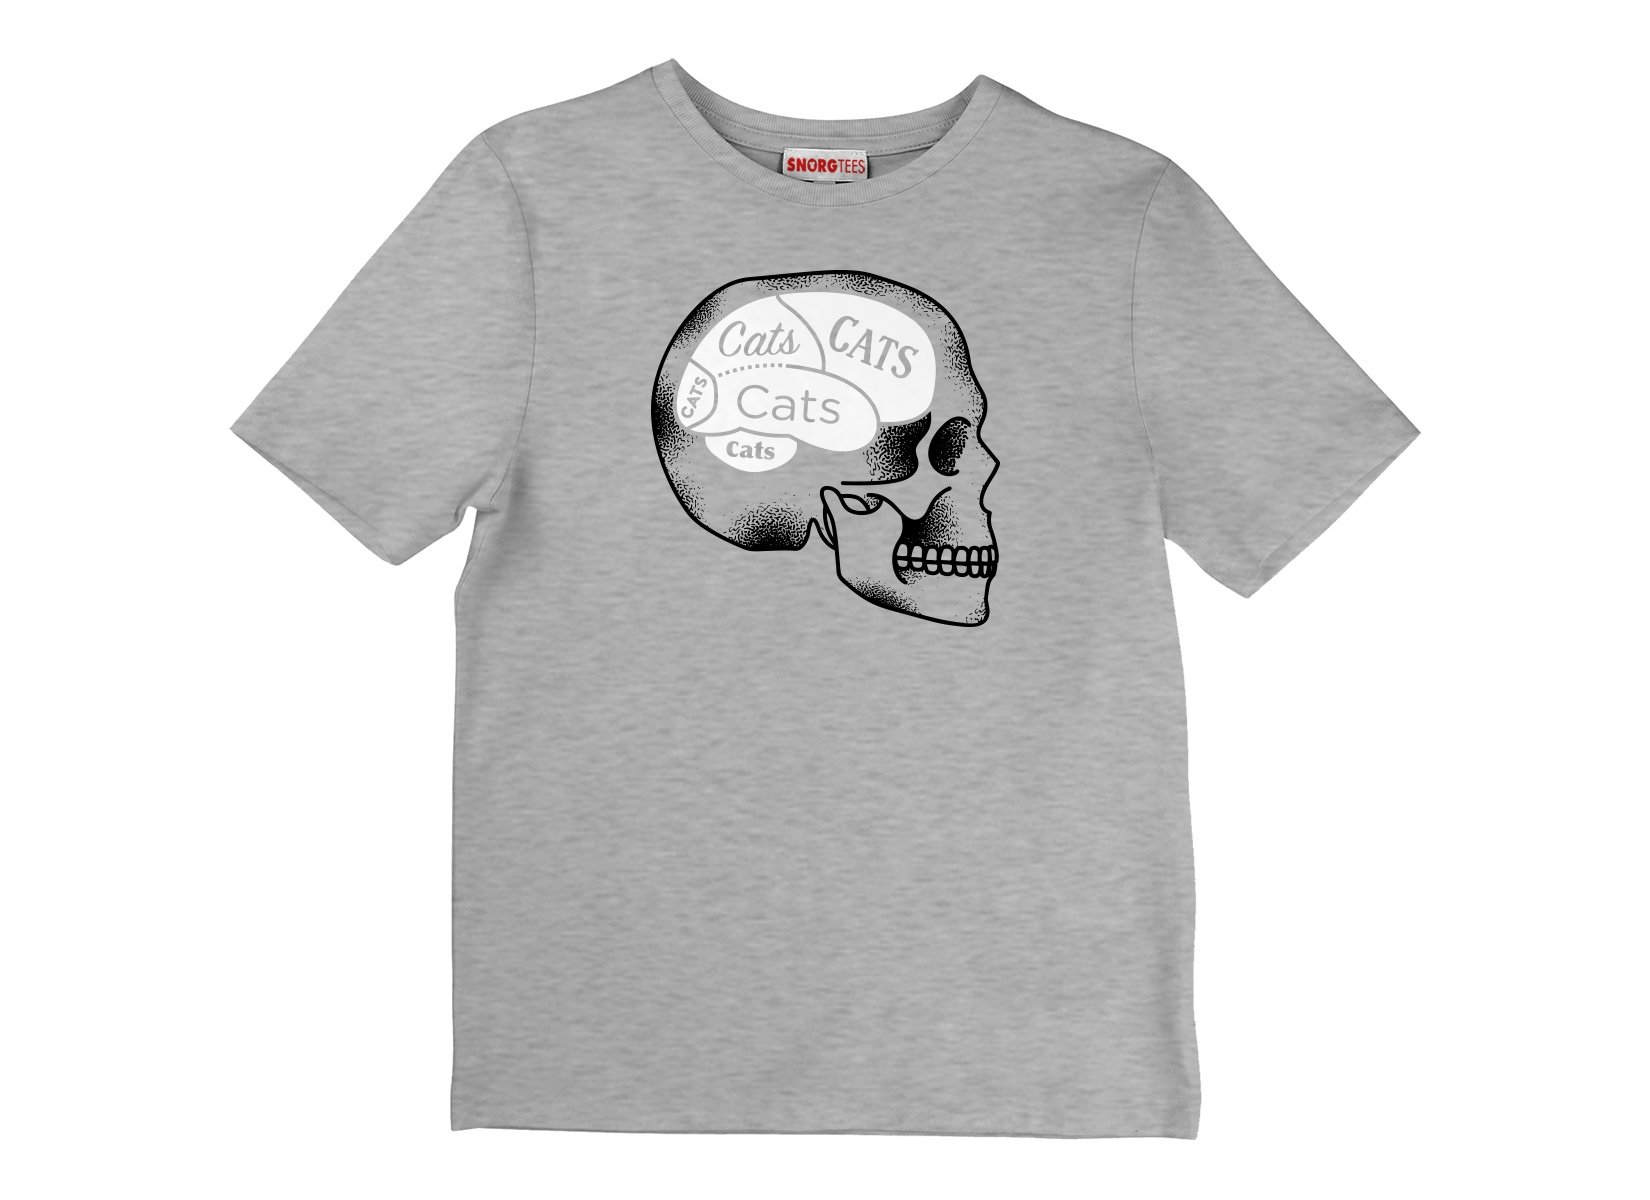 Cats On The Brain on Kids T-Shirt